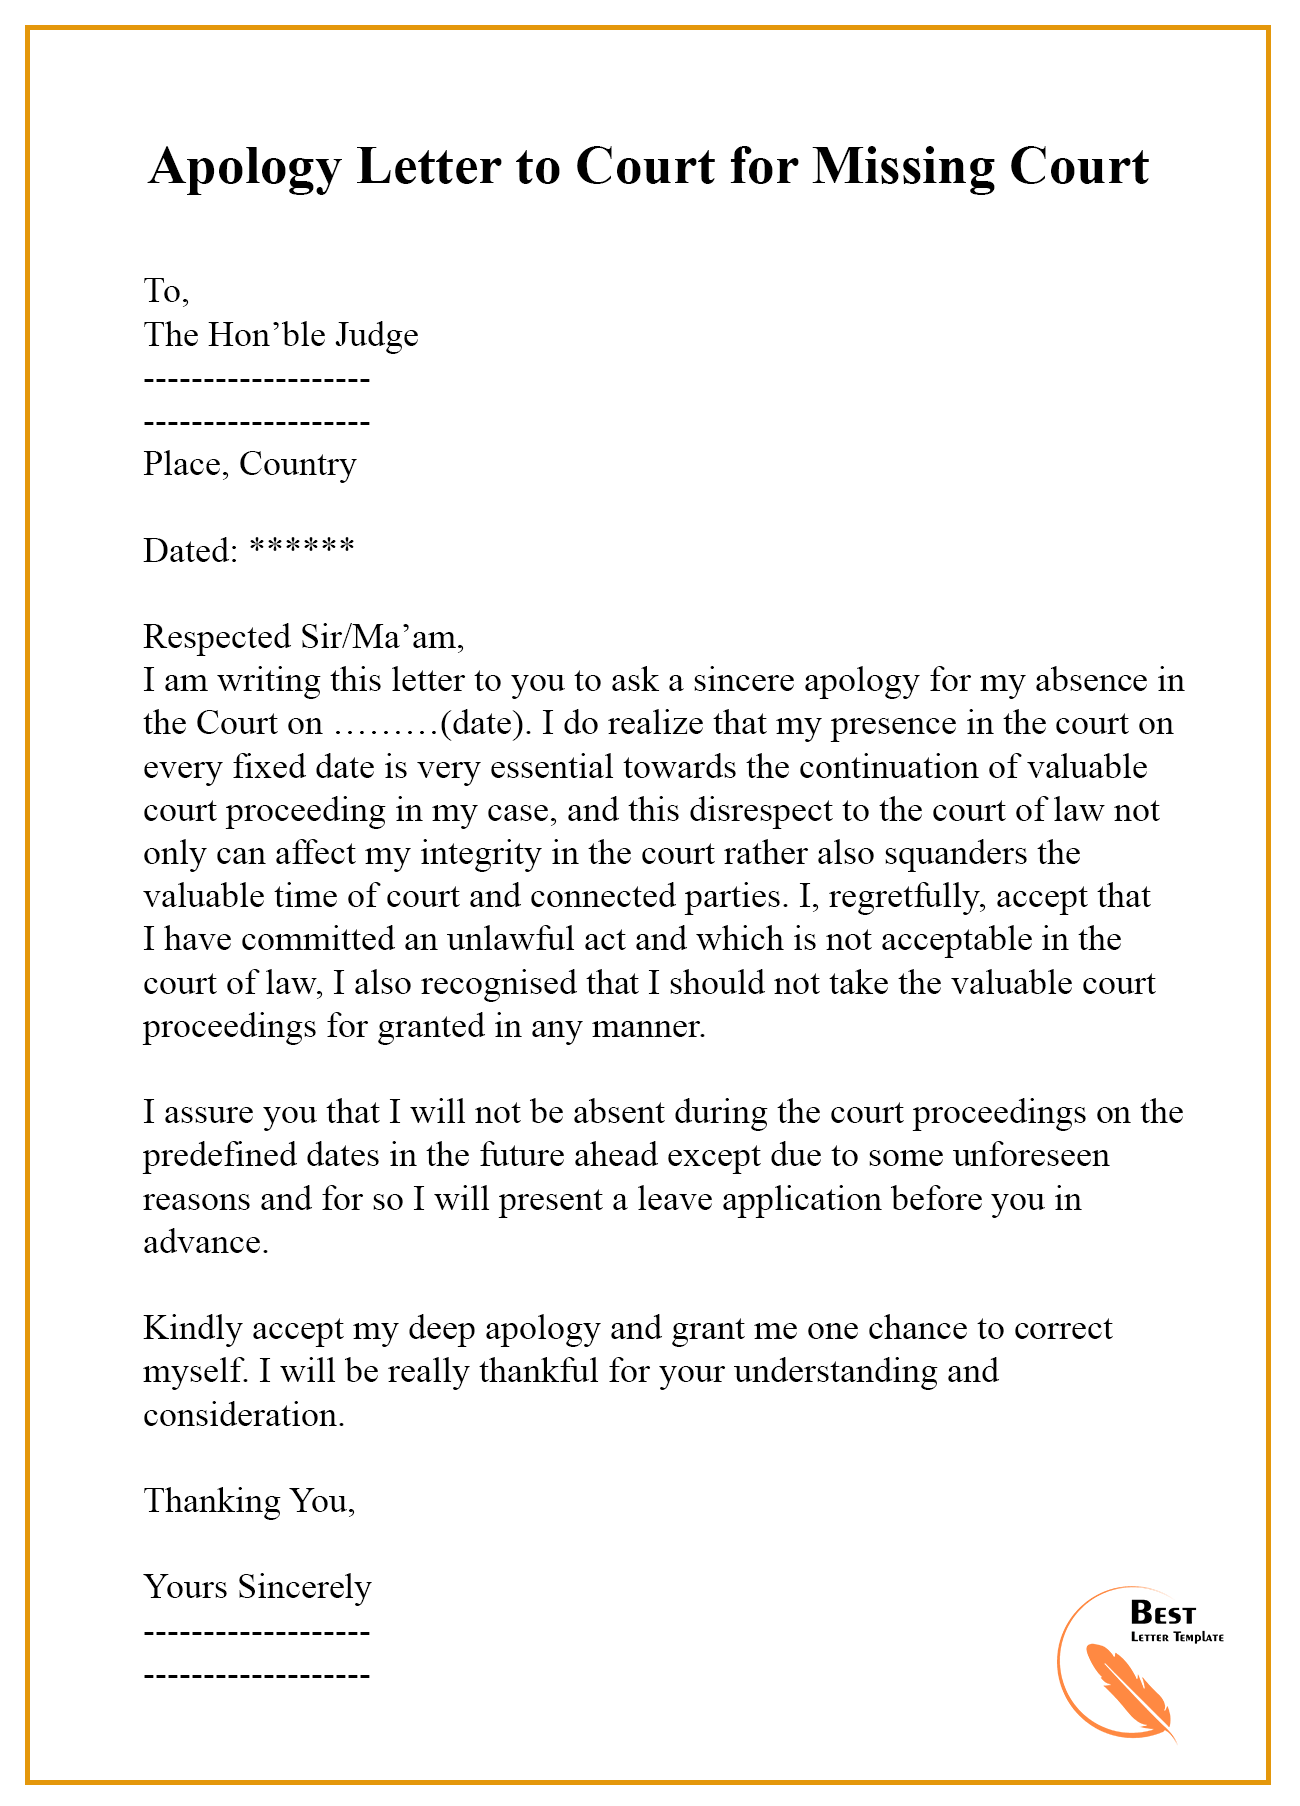 letter template for court  Apology-Letter-to-Court-for-Missing-Court | Best Letter Template